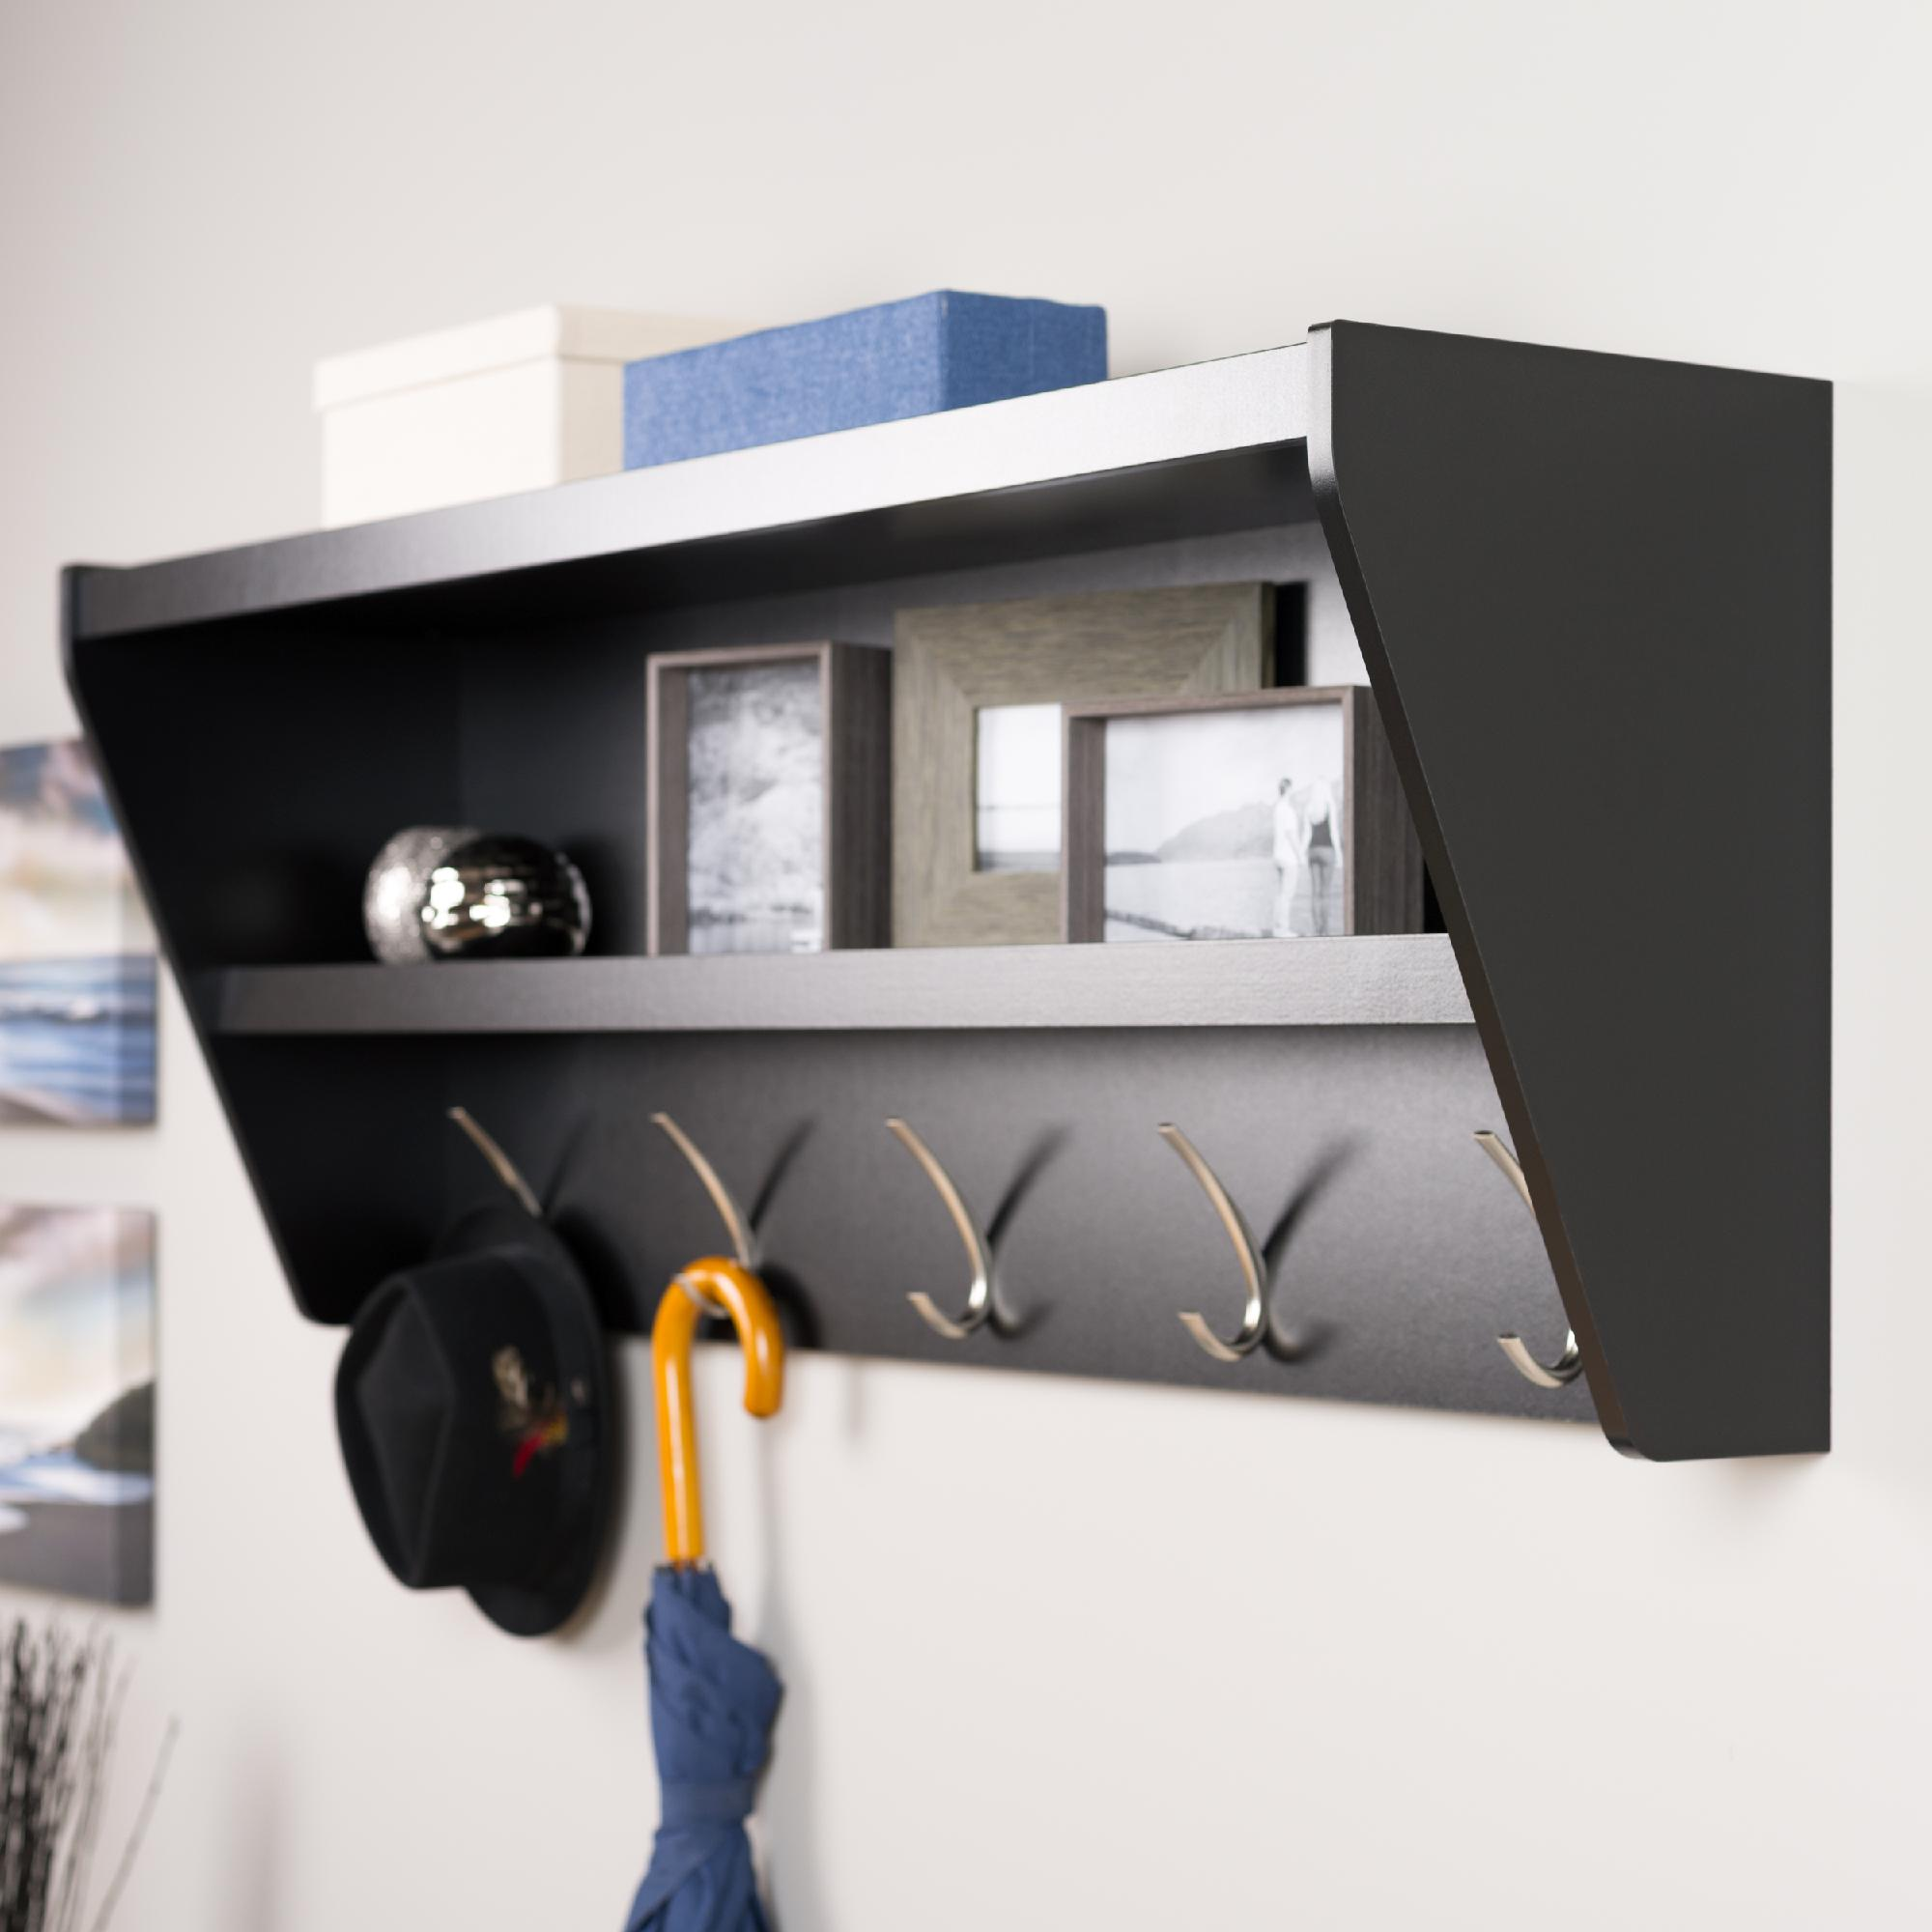 prepac floating entryway shelf coat rack black spin prod unit small ikea closet shoe storage glass hardware long foyer wall large square kitchen island white shelves chunky oak